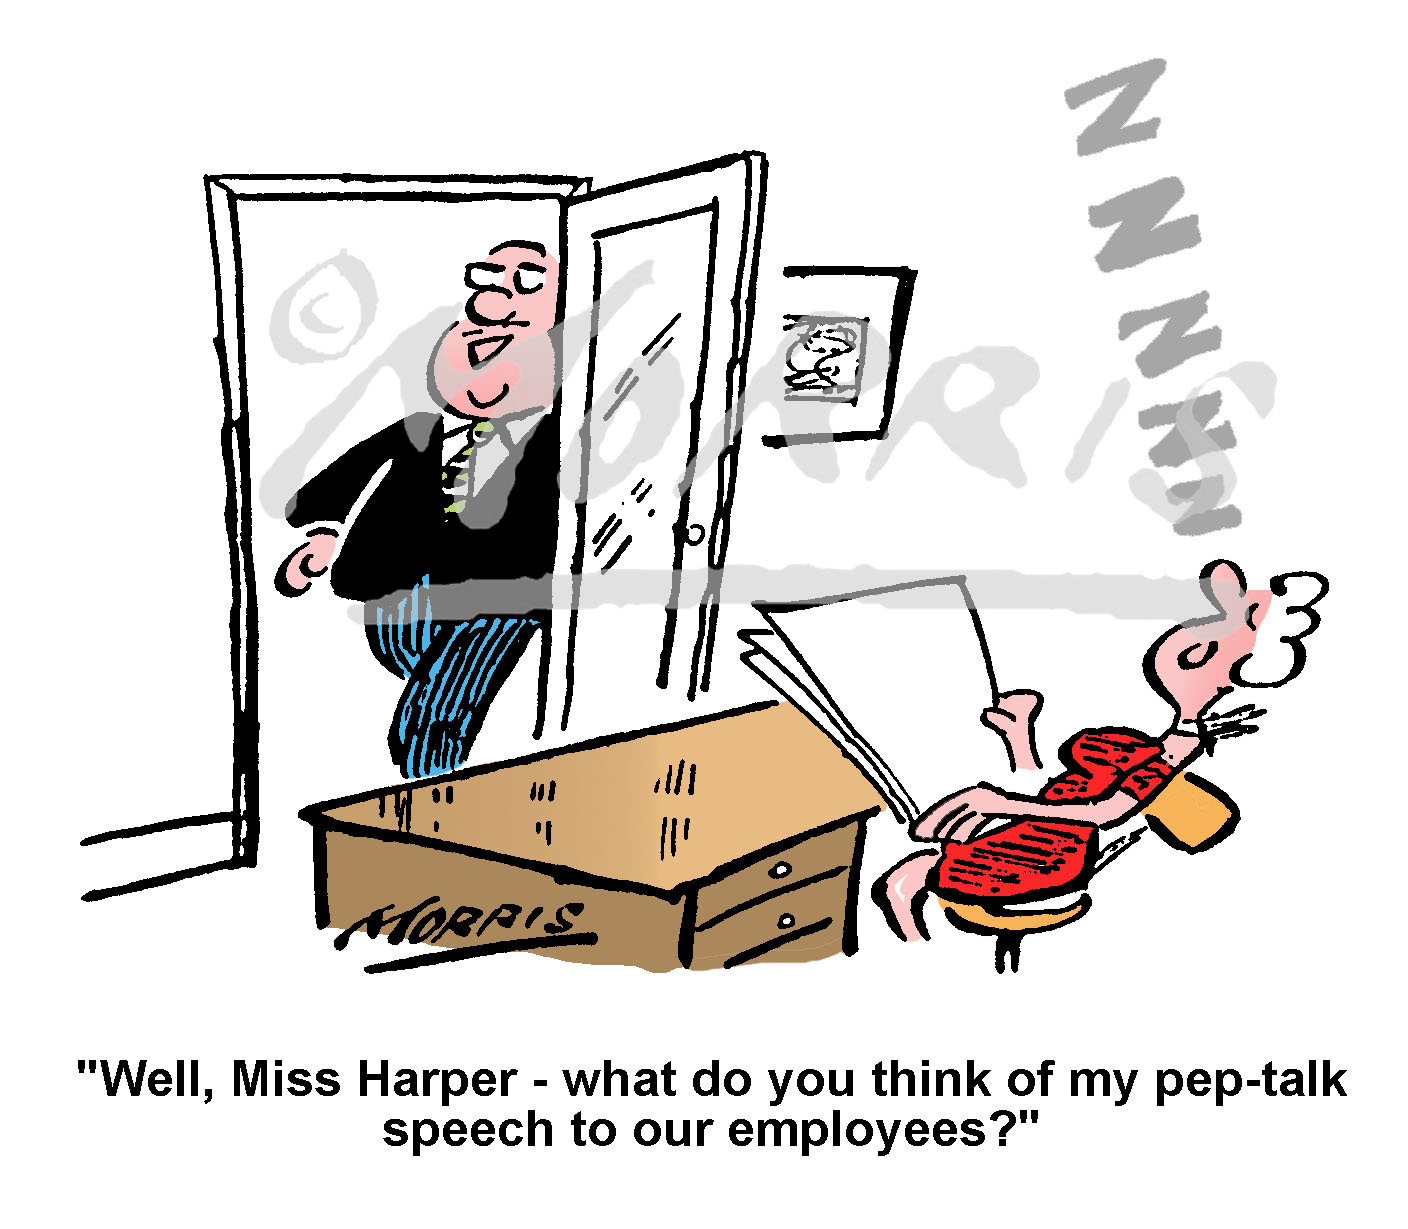 Motivation speech to employees cartoon Ref: 1181col